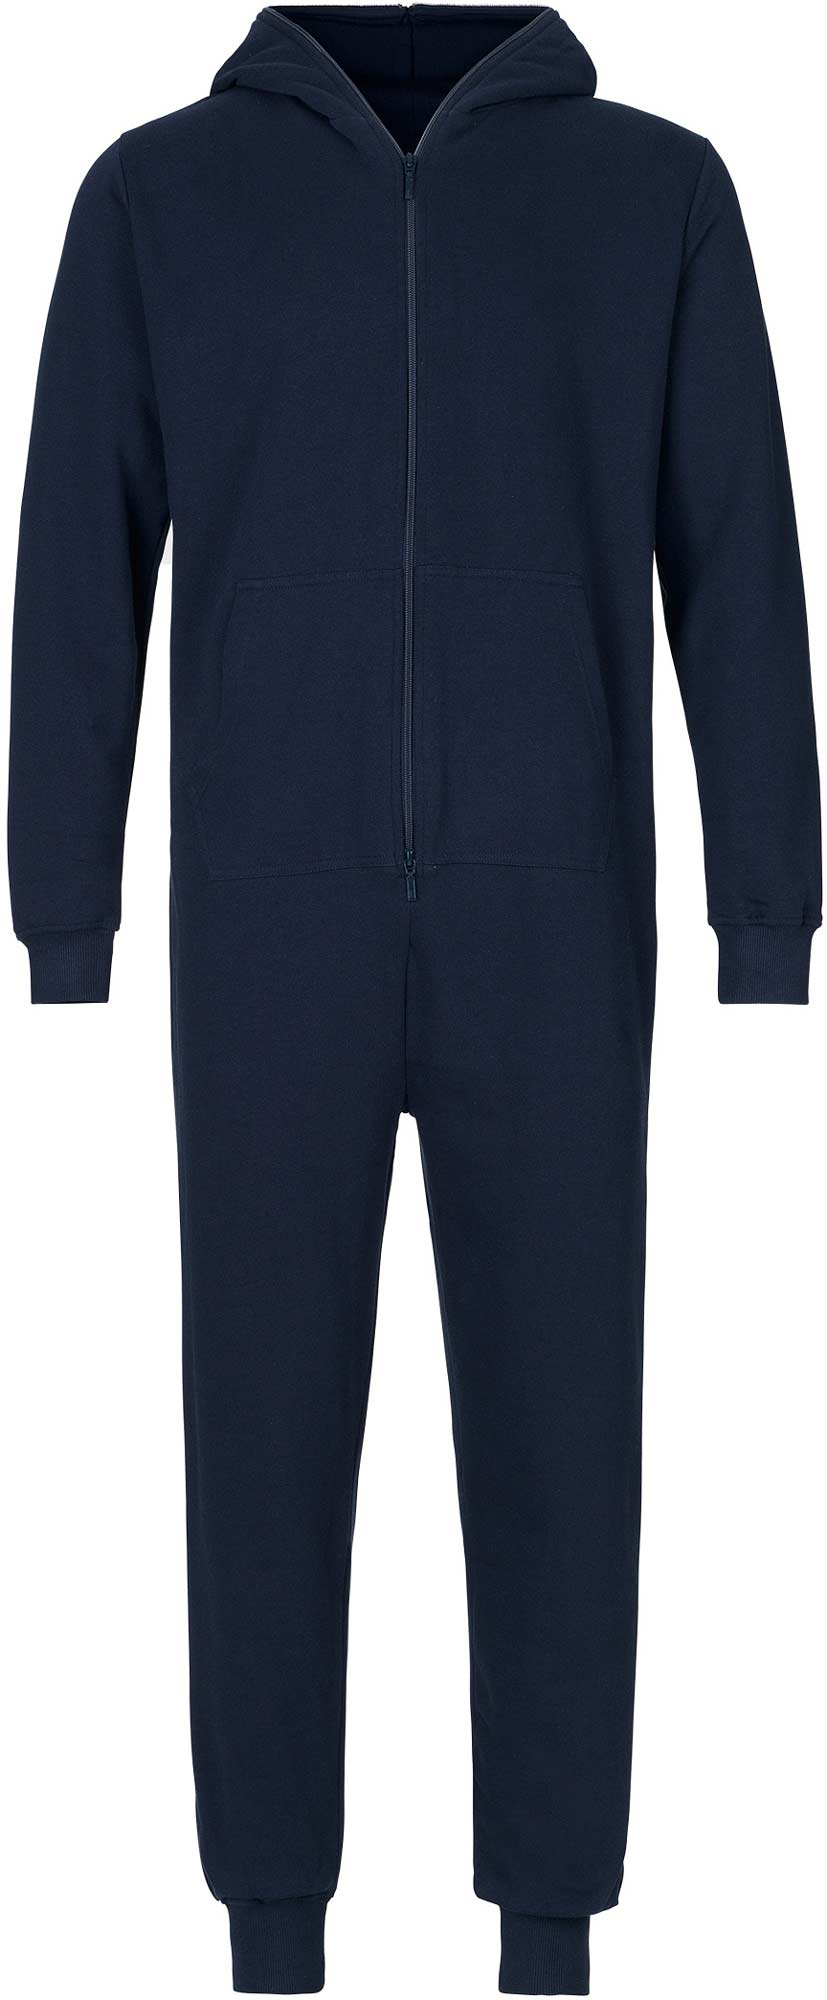 onepiece jumpsuit f r m nner overall aus biobaumwolle navy. Black Bedroom Furniture Sets. Home Design Ideas